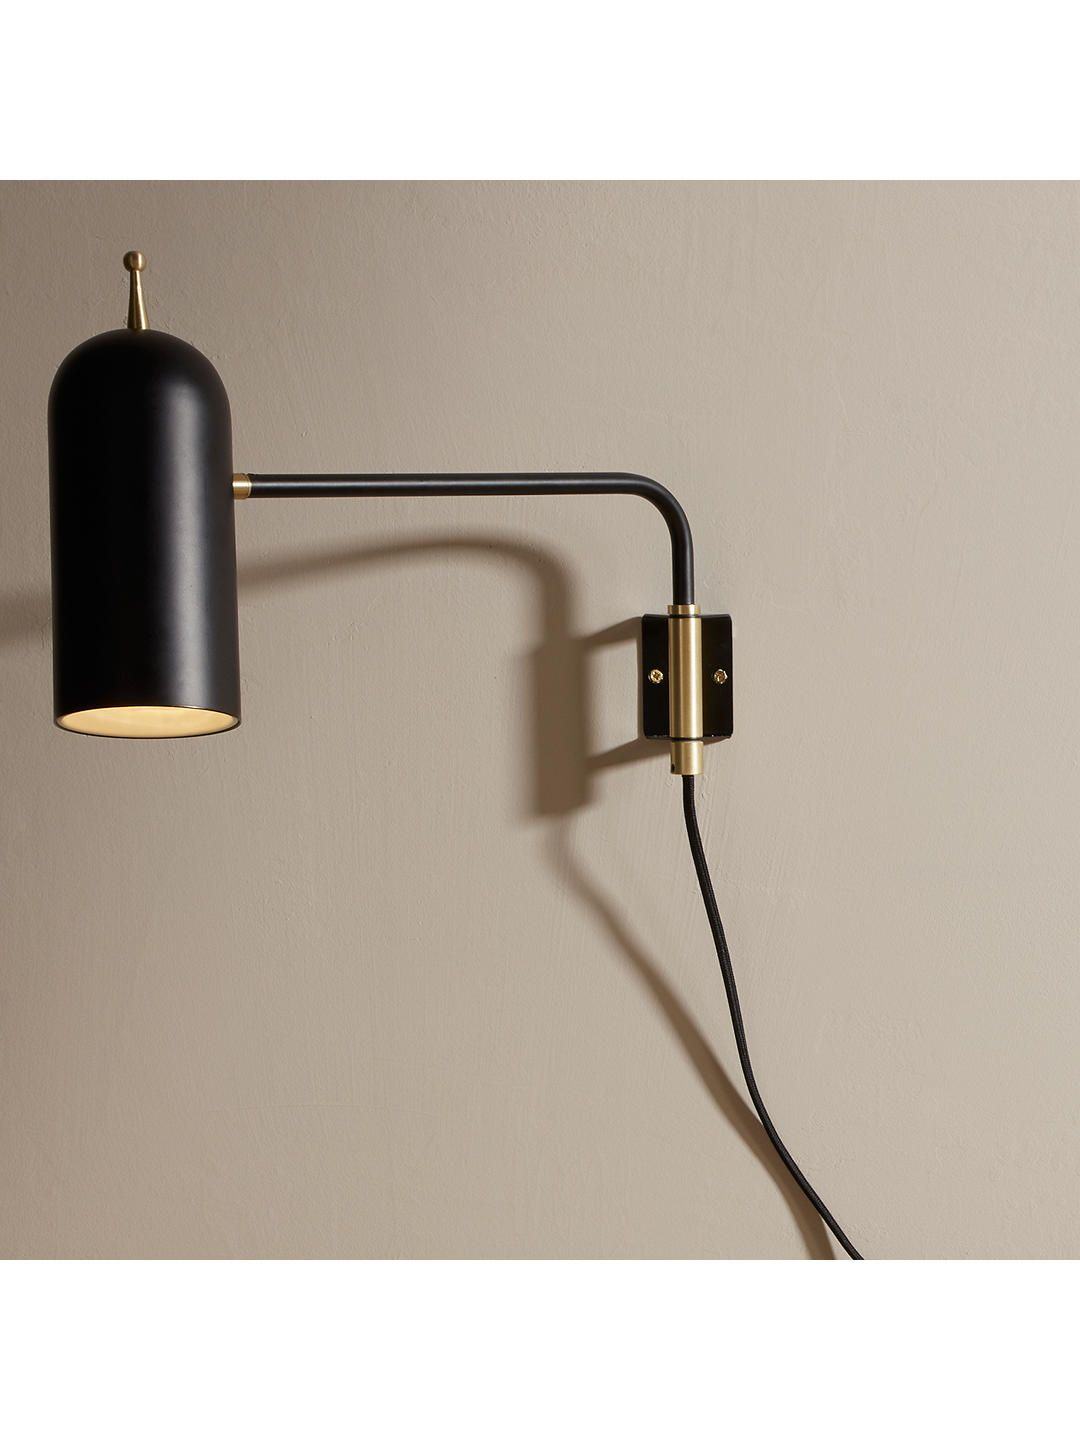 Design Project By John Lewis No 045 Led Plug In Wall Light White In 2020 Wall Lights Black Wall Lights Plug In Wall Lights